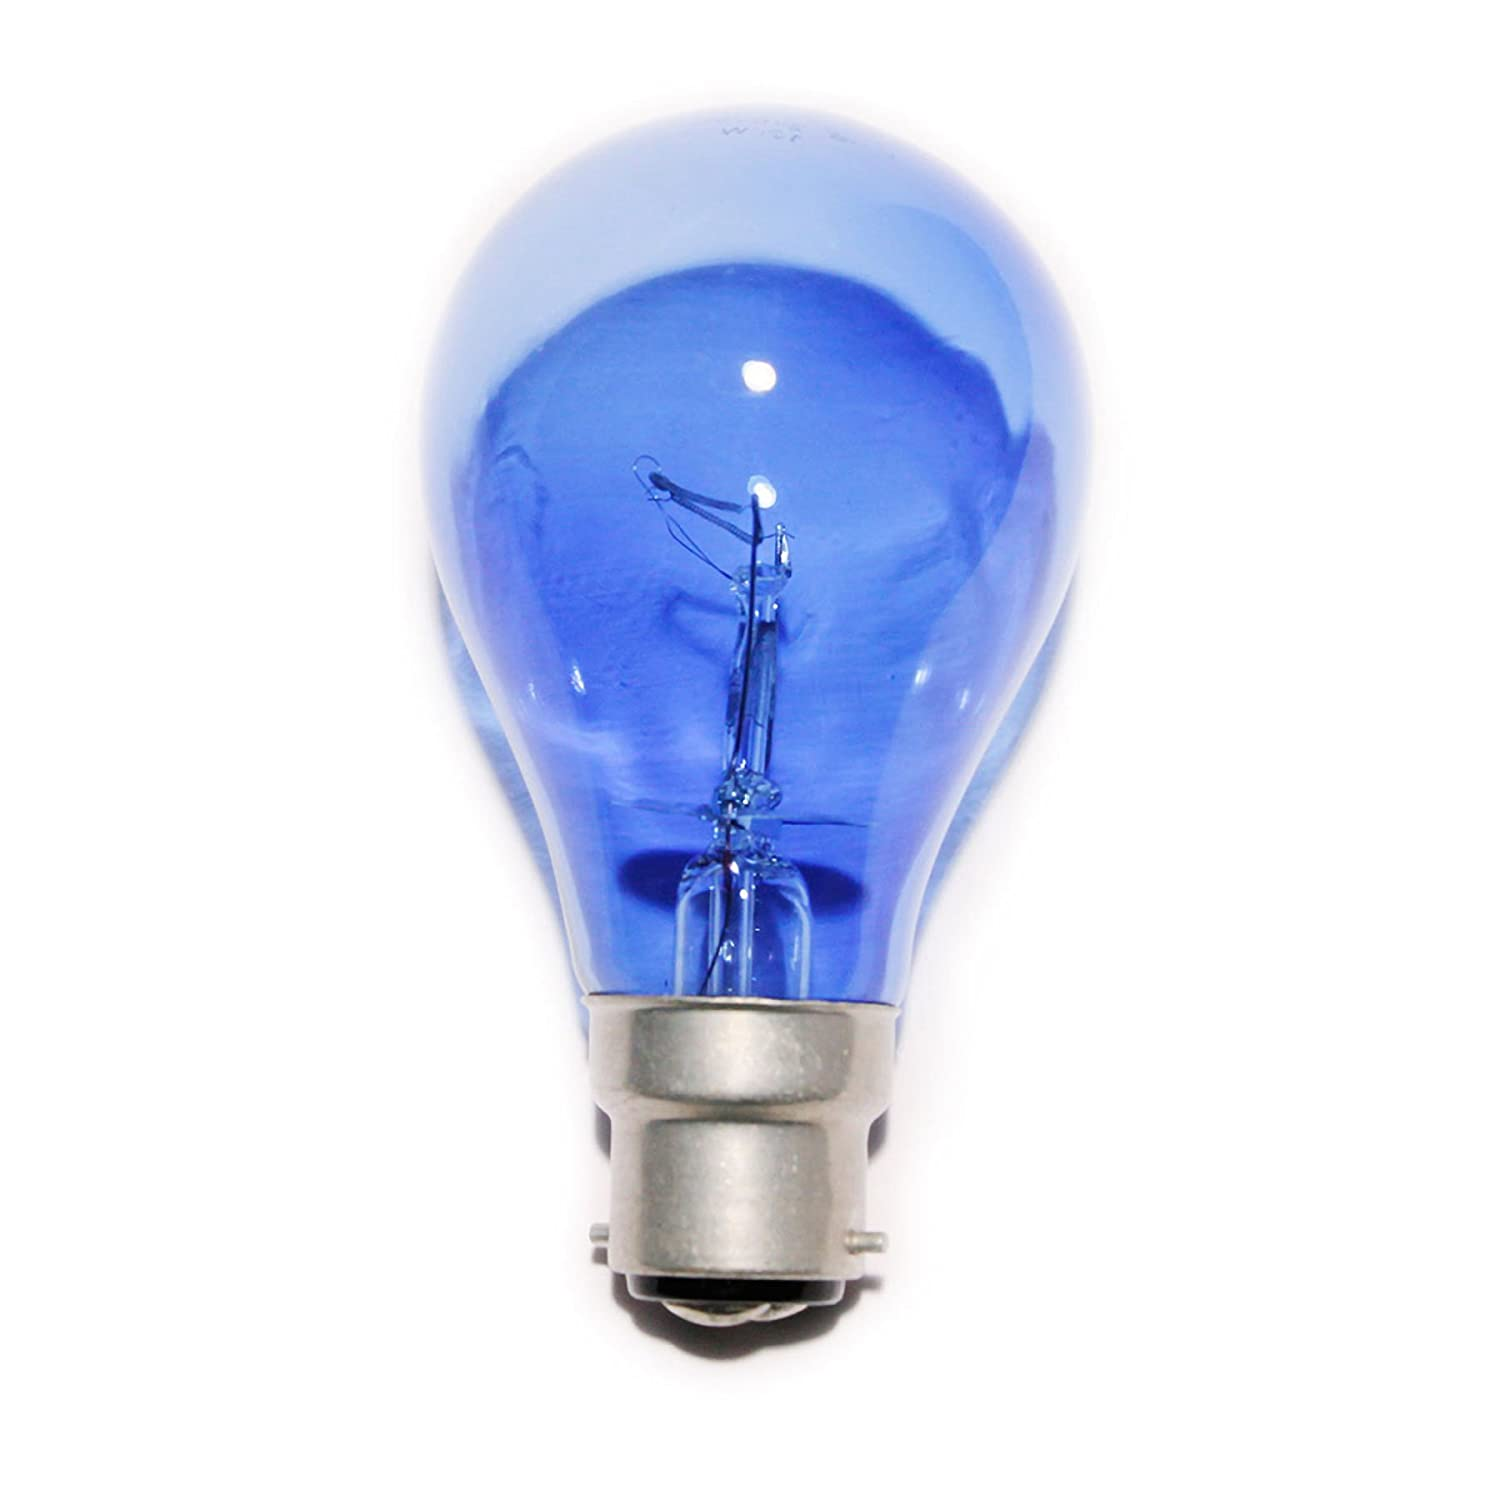 blue energy bell led watt saving outdoor light bulbs reflector bulb lighting